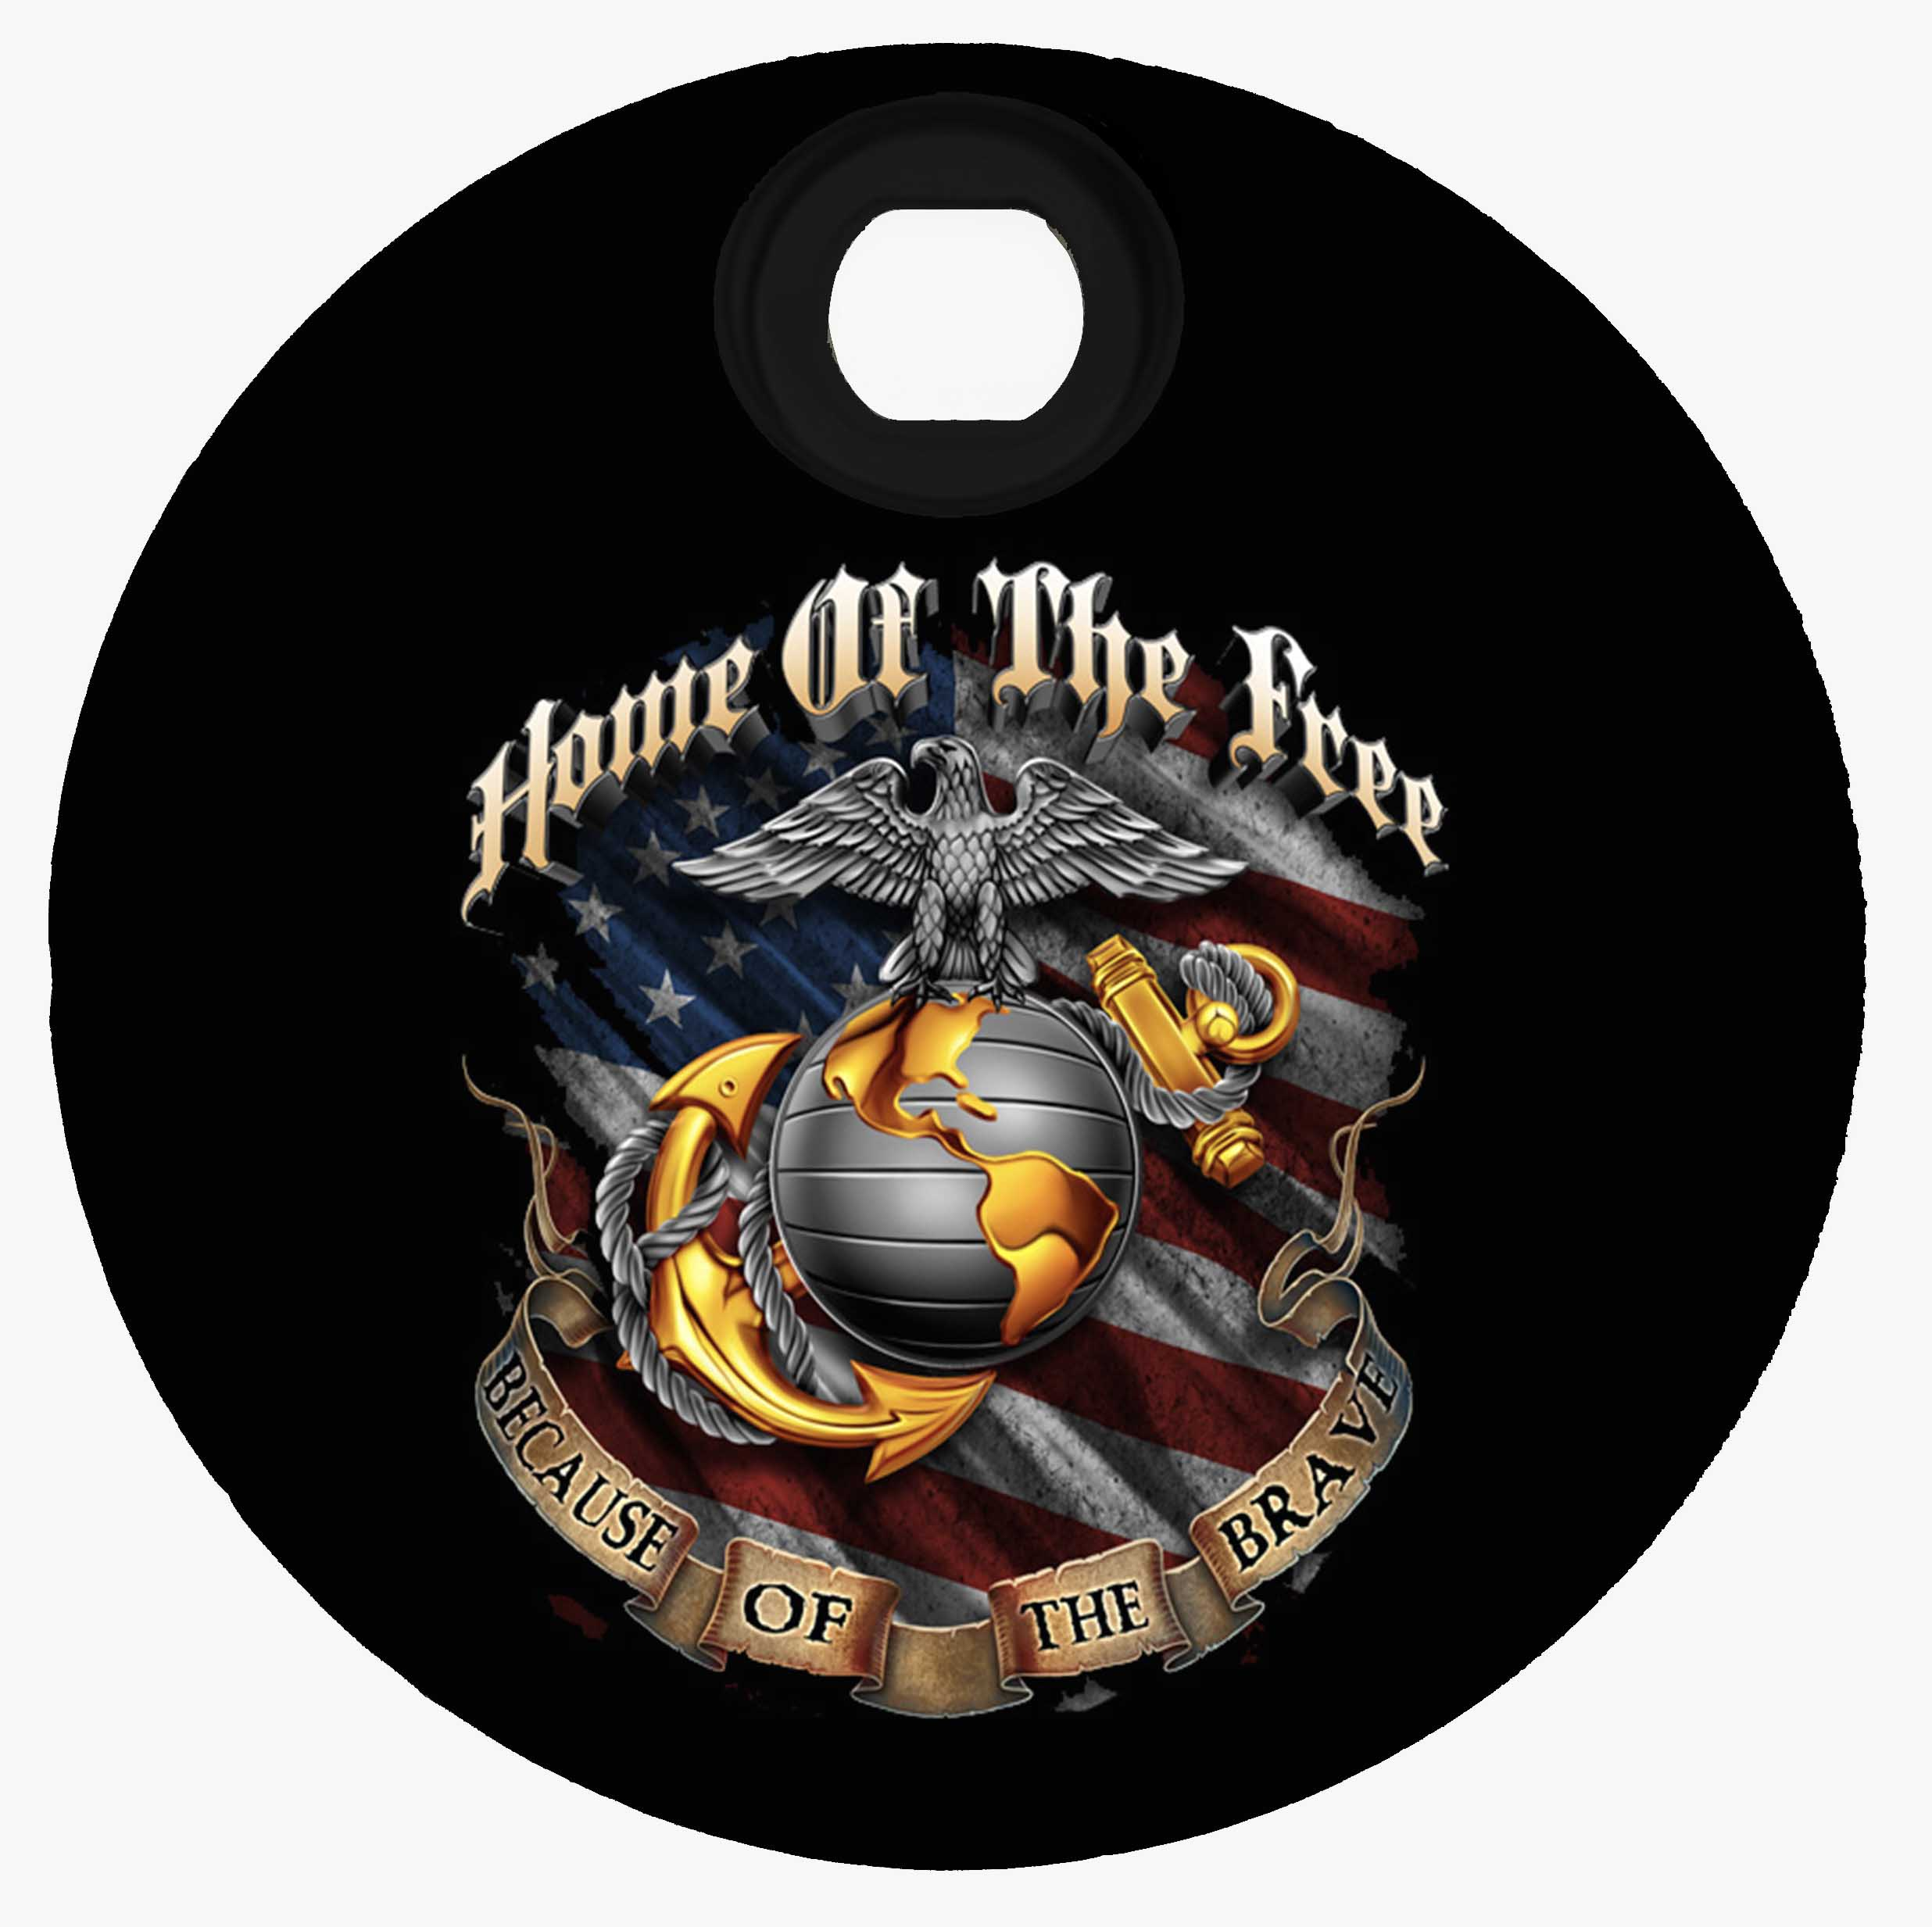 Harley Davidson Custom Fuel Door - Home of the Free 2 Marines